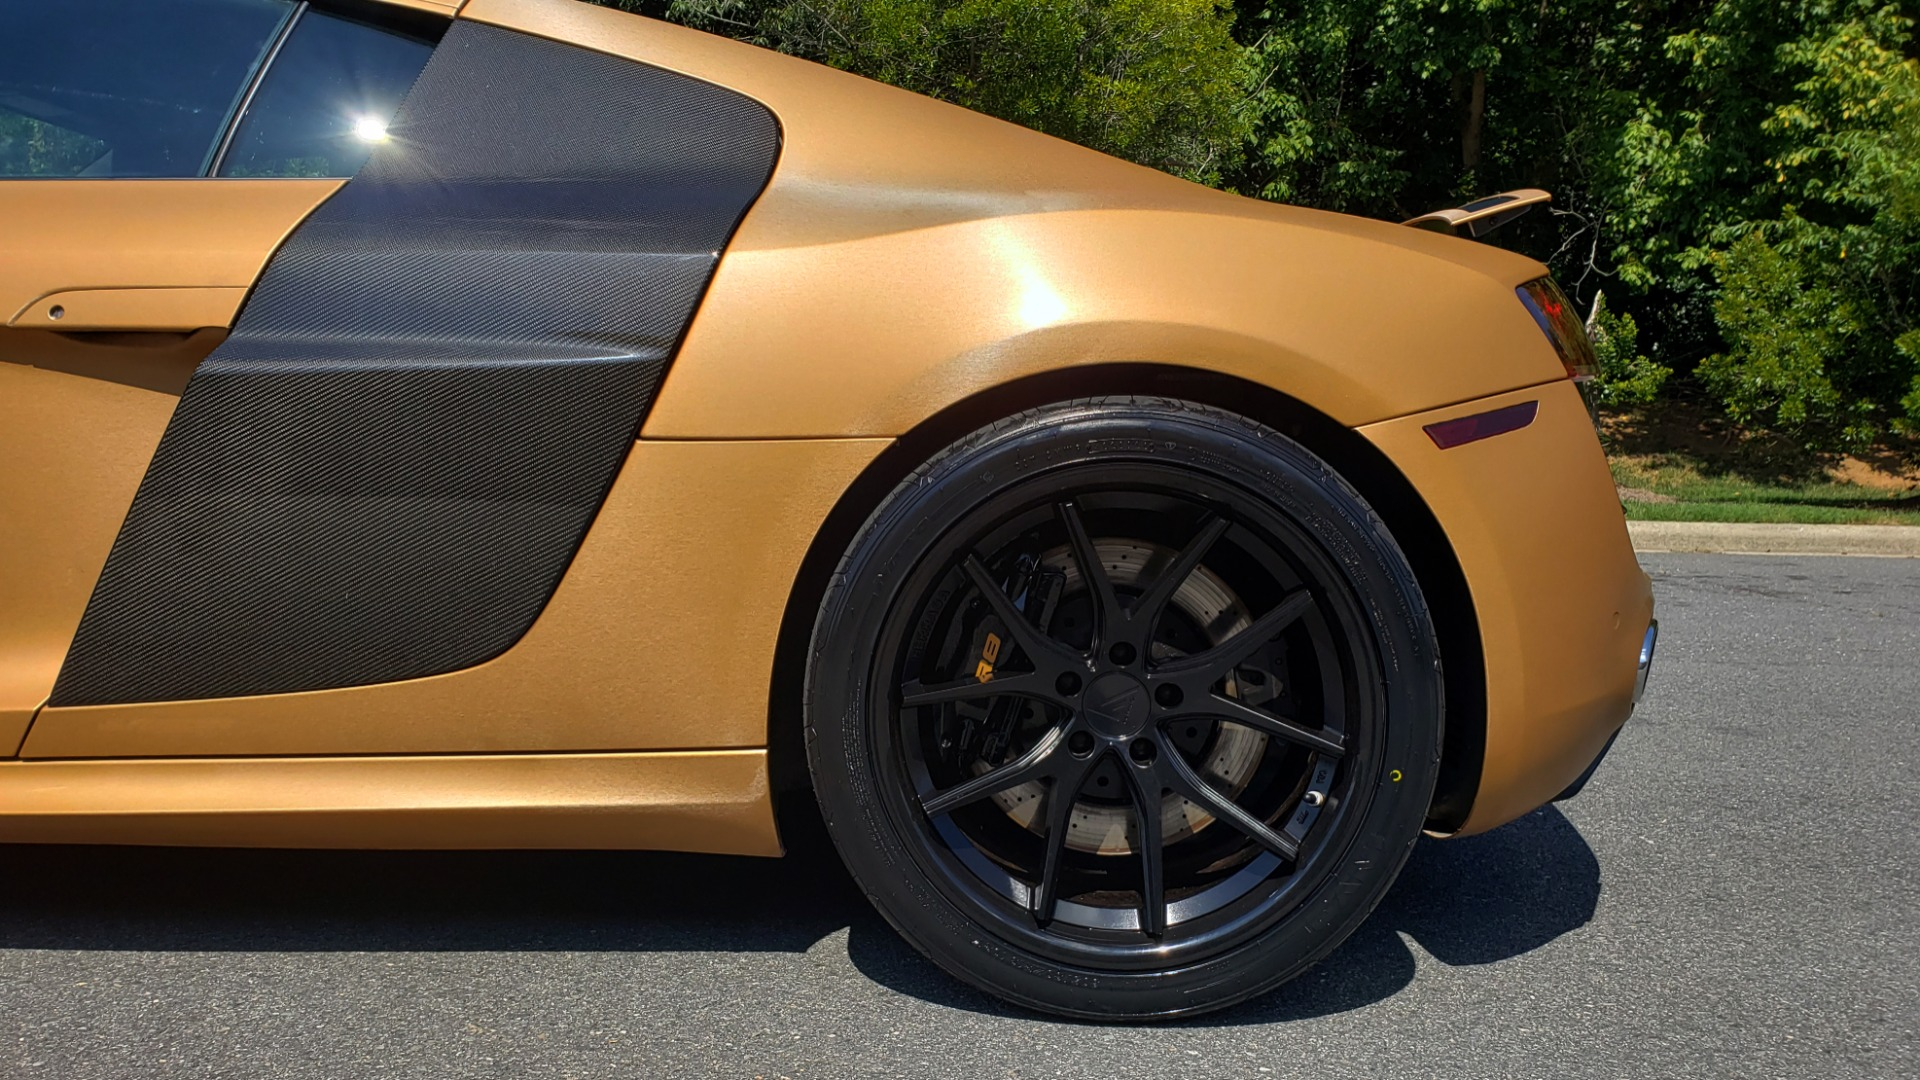 Used 2012 Audi R8 V10 5.2L / CUST WRAP BRUSHED BRONZE / NAV / B&O SOUND / CUST 19IN WHLS for sale $79,999 at Formula Imports in Charlotte NC 28227 65